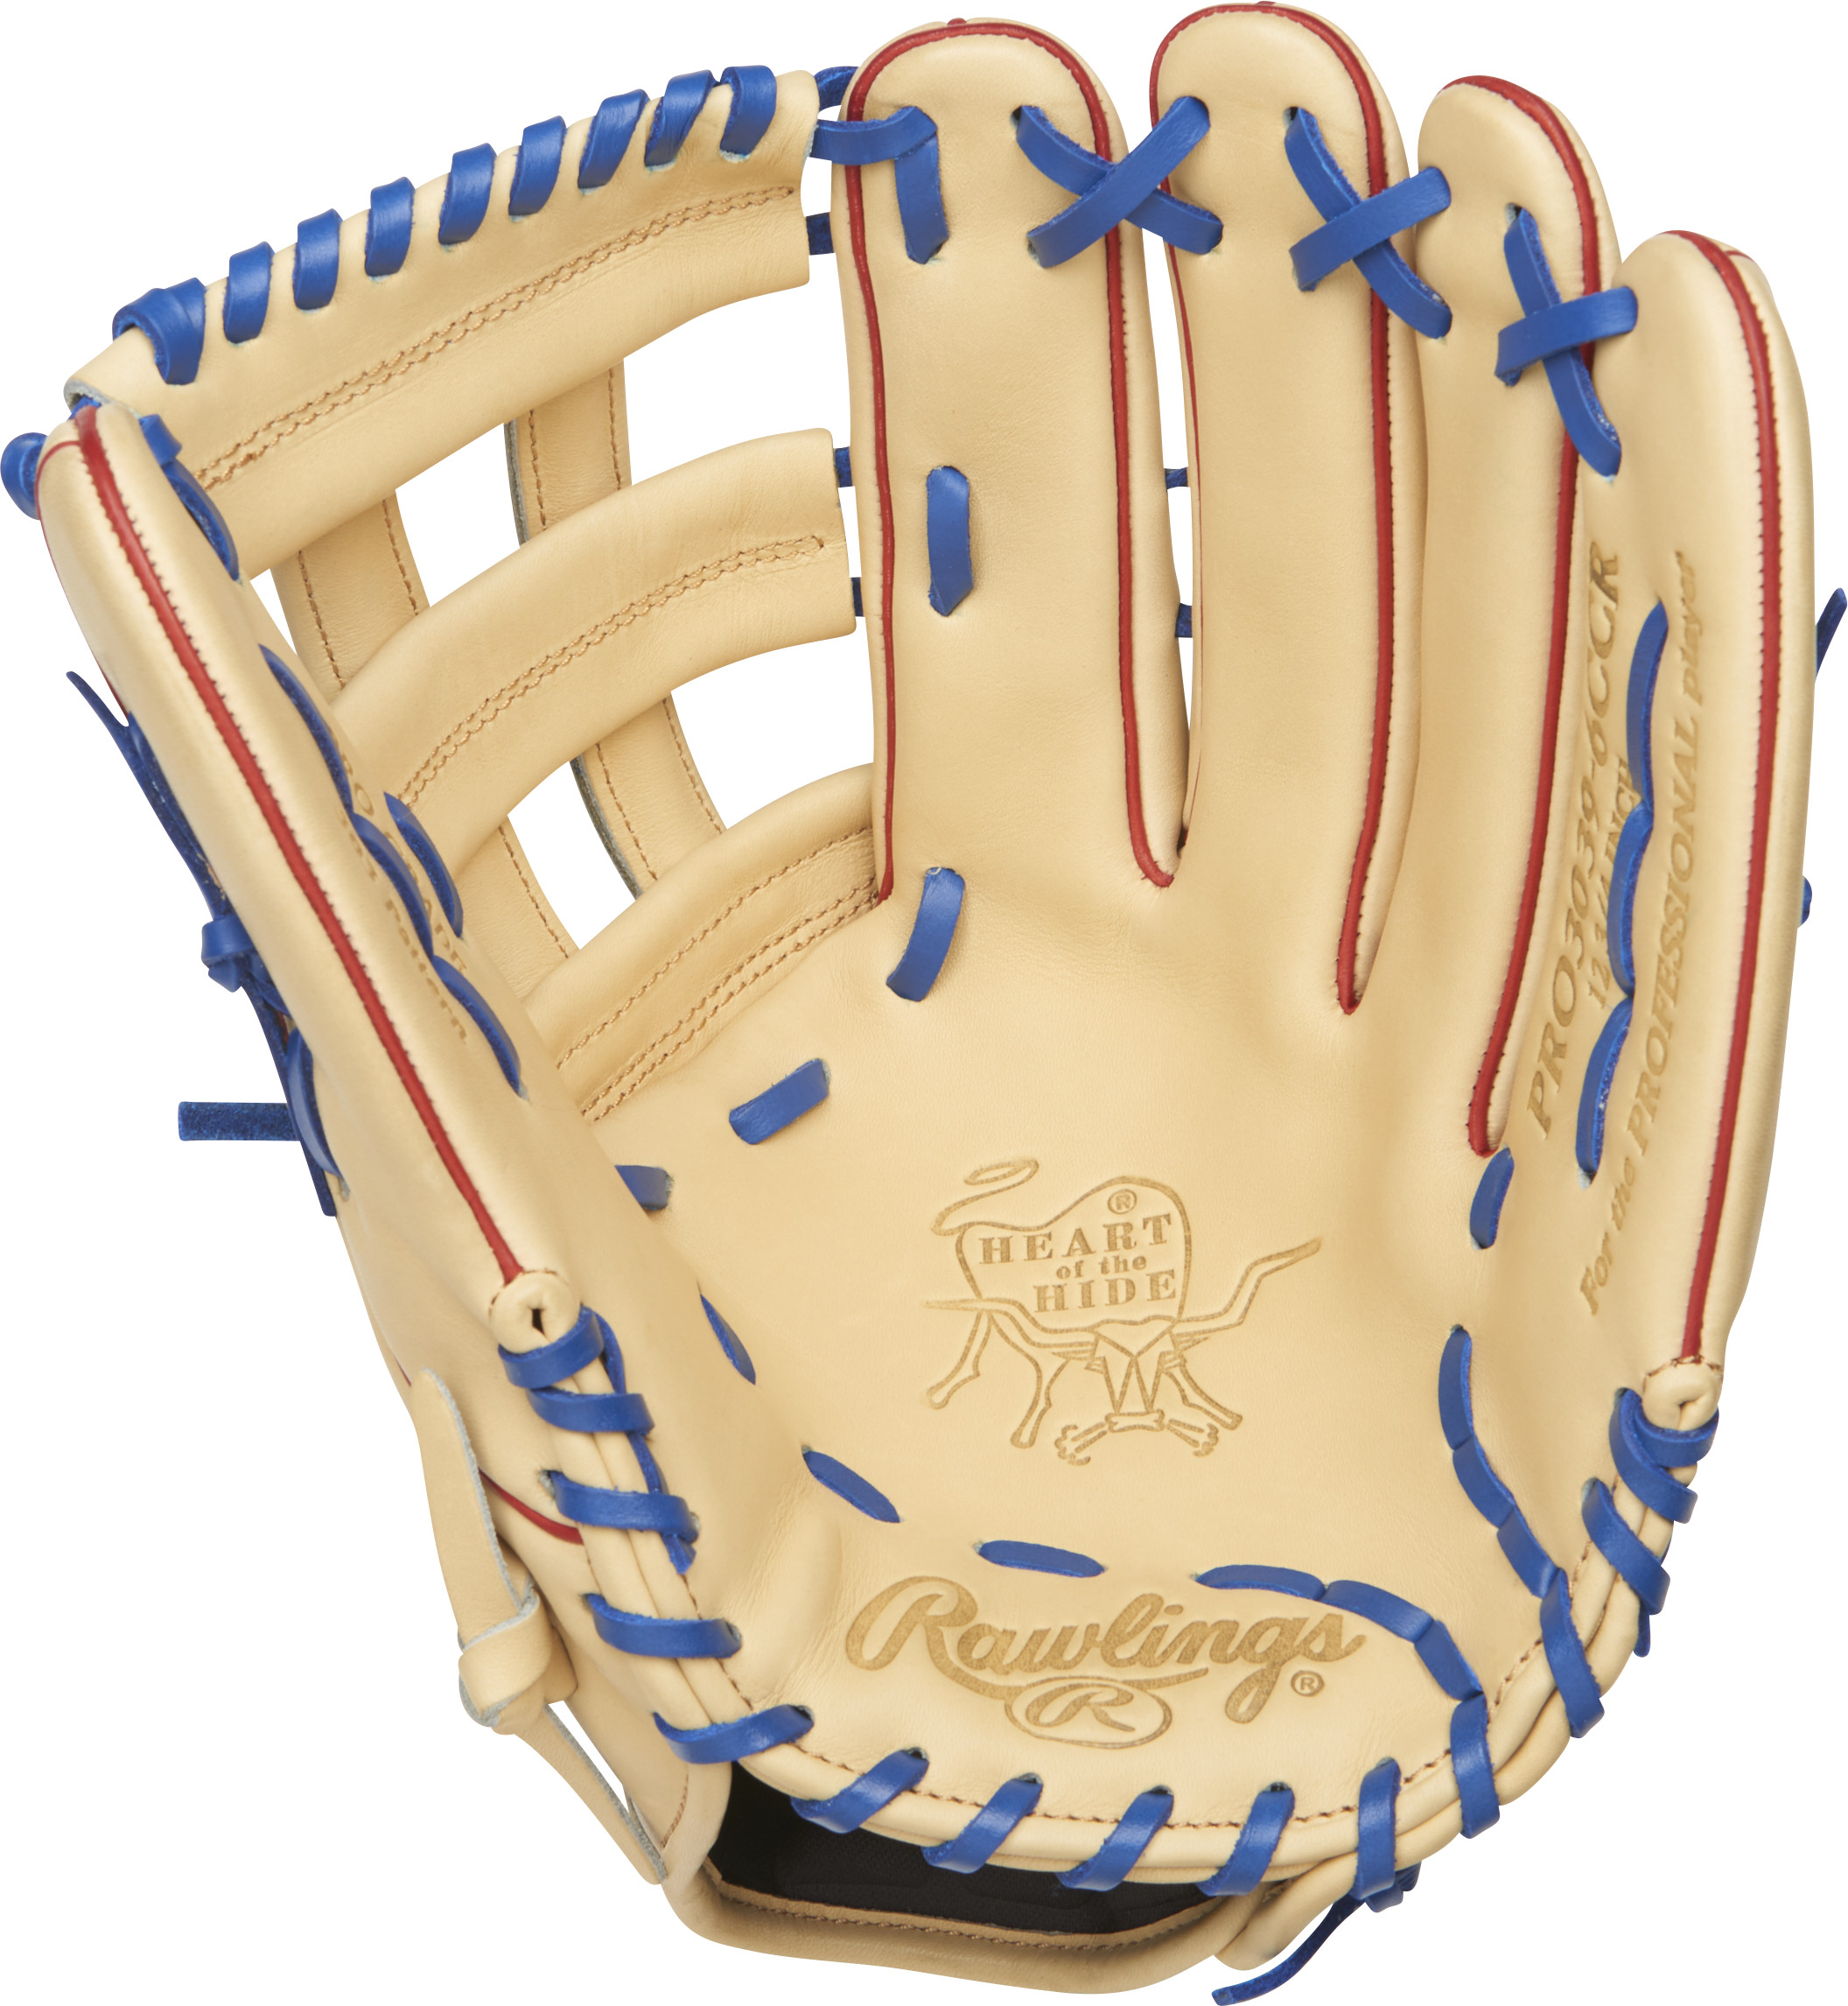 http://www.bestbatdeals.com/images/gloves/rawlings/PRO3039-6CCR-1.jpg